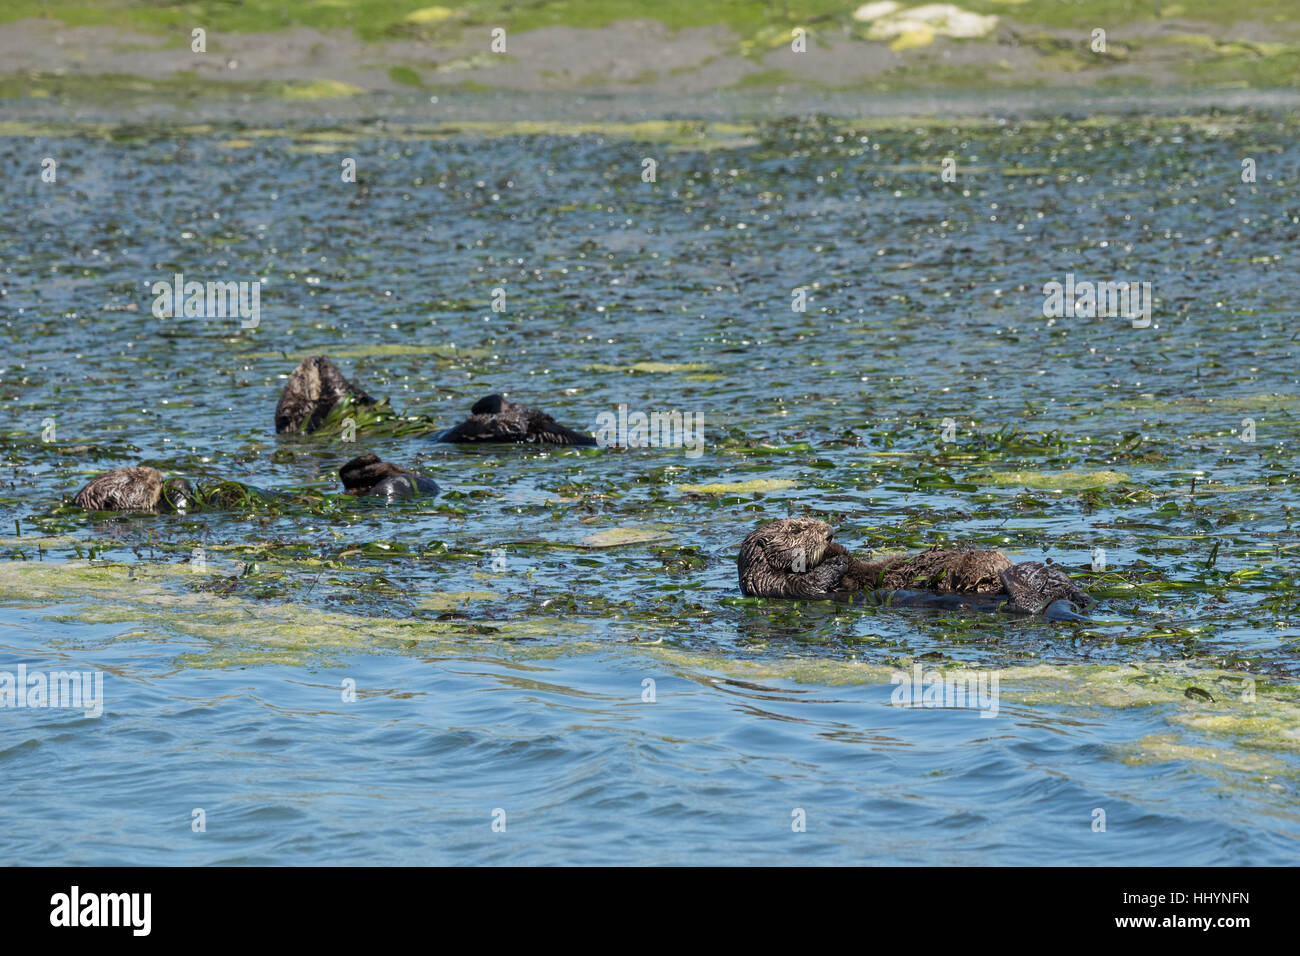 California sea otters or southern sea otters, Enhydra lutris nereis, resting in a raft while wrapped in eelgrass, Elkhorn Slough, California, USA Stock Photo